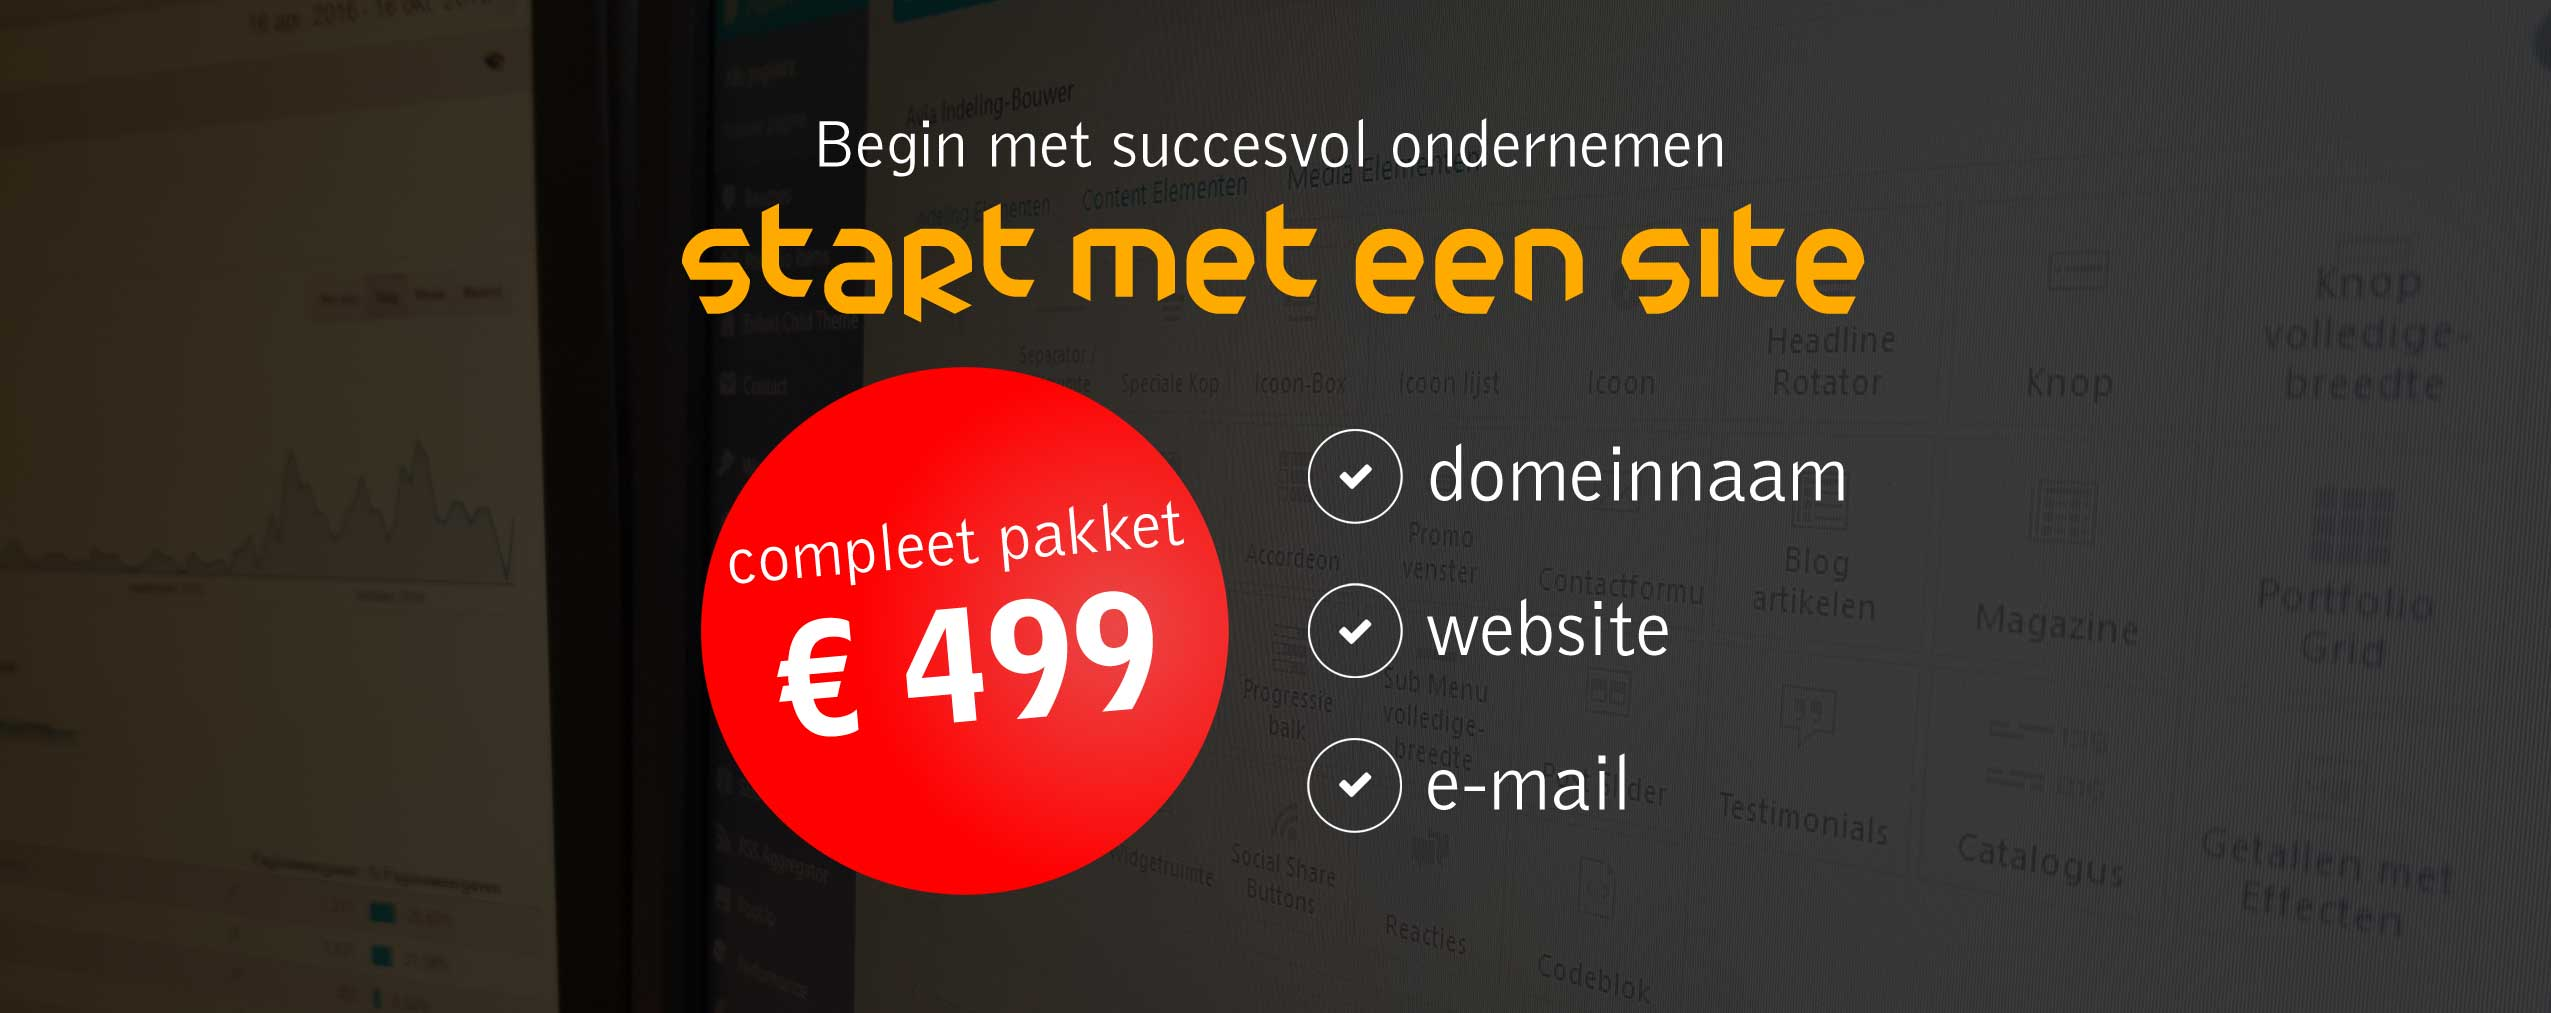 Flyer Start met een site